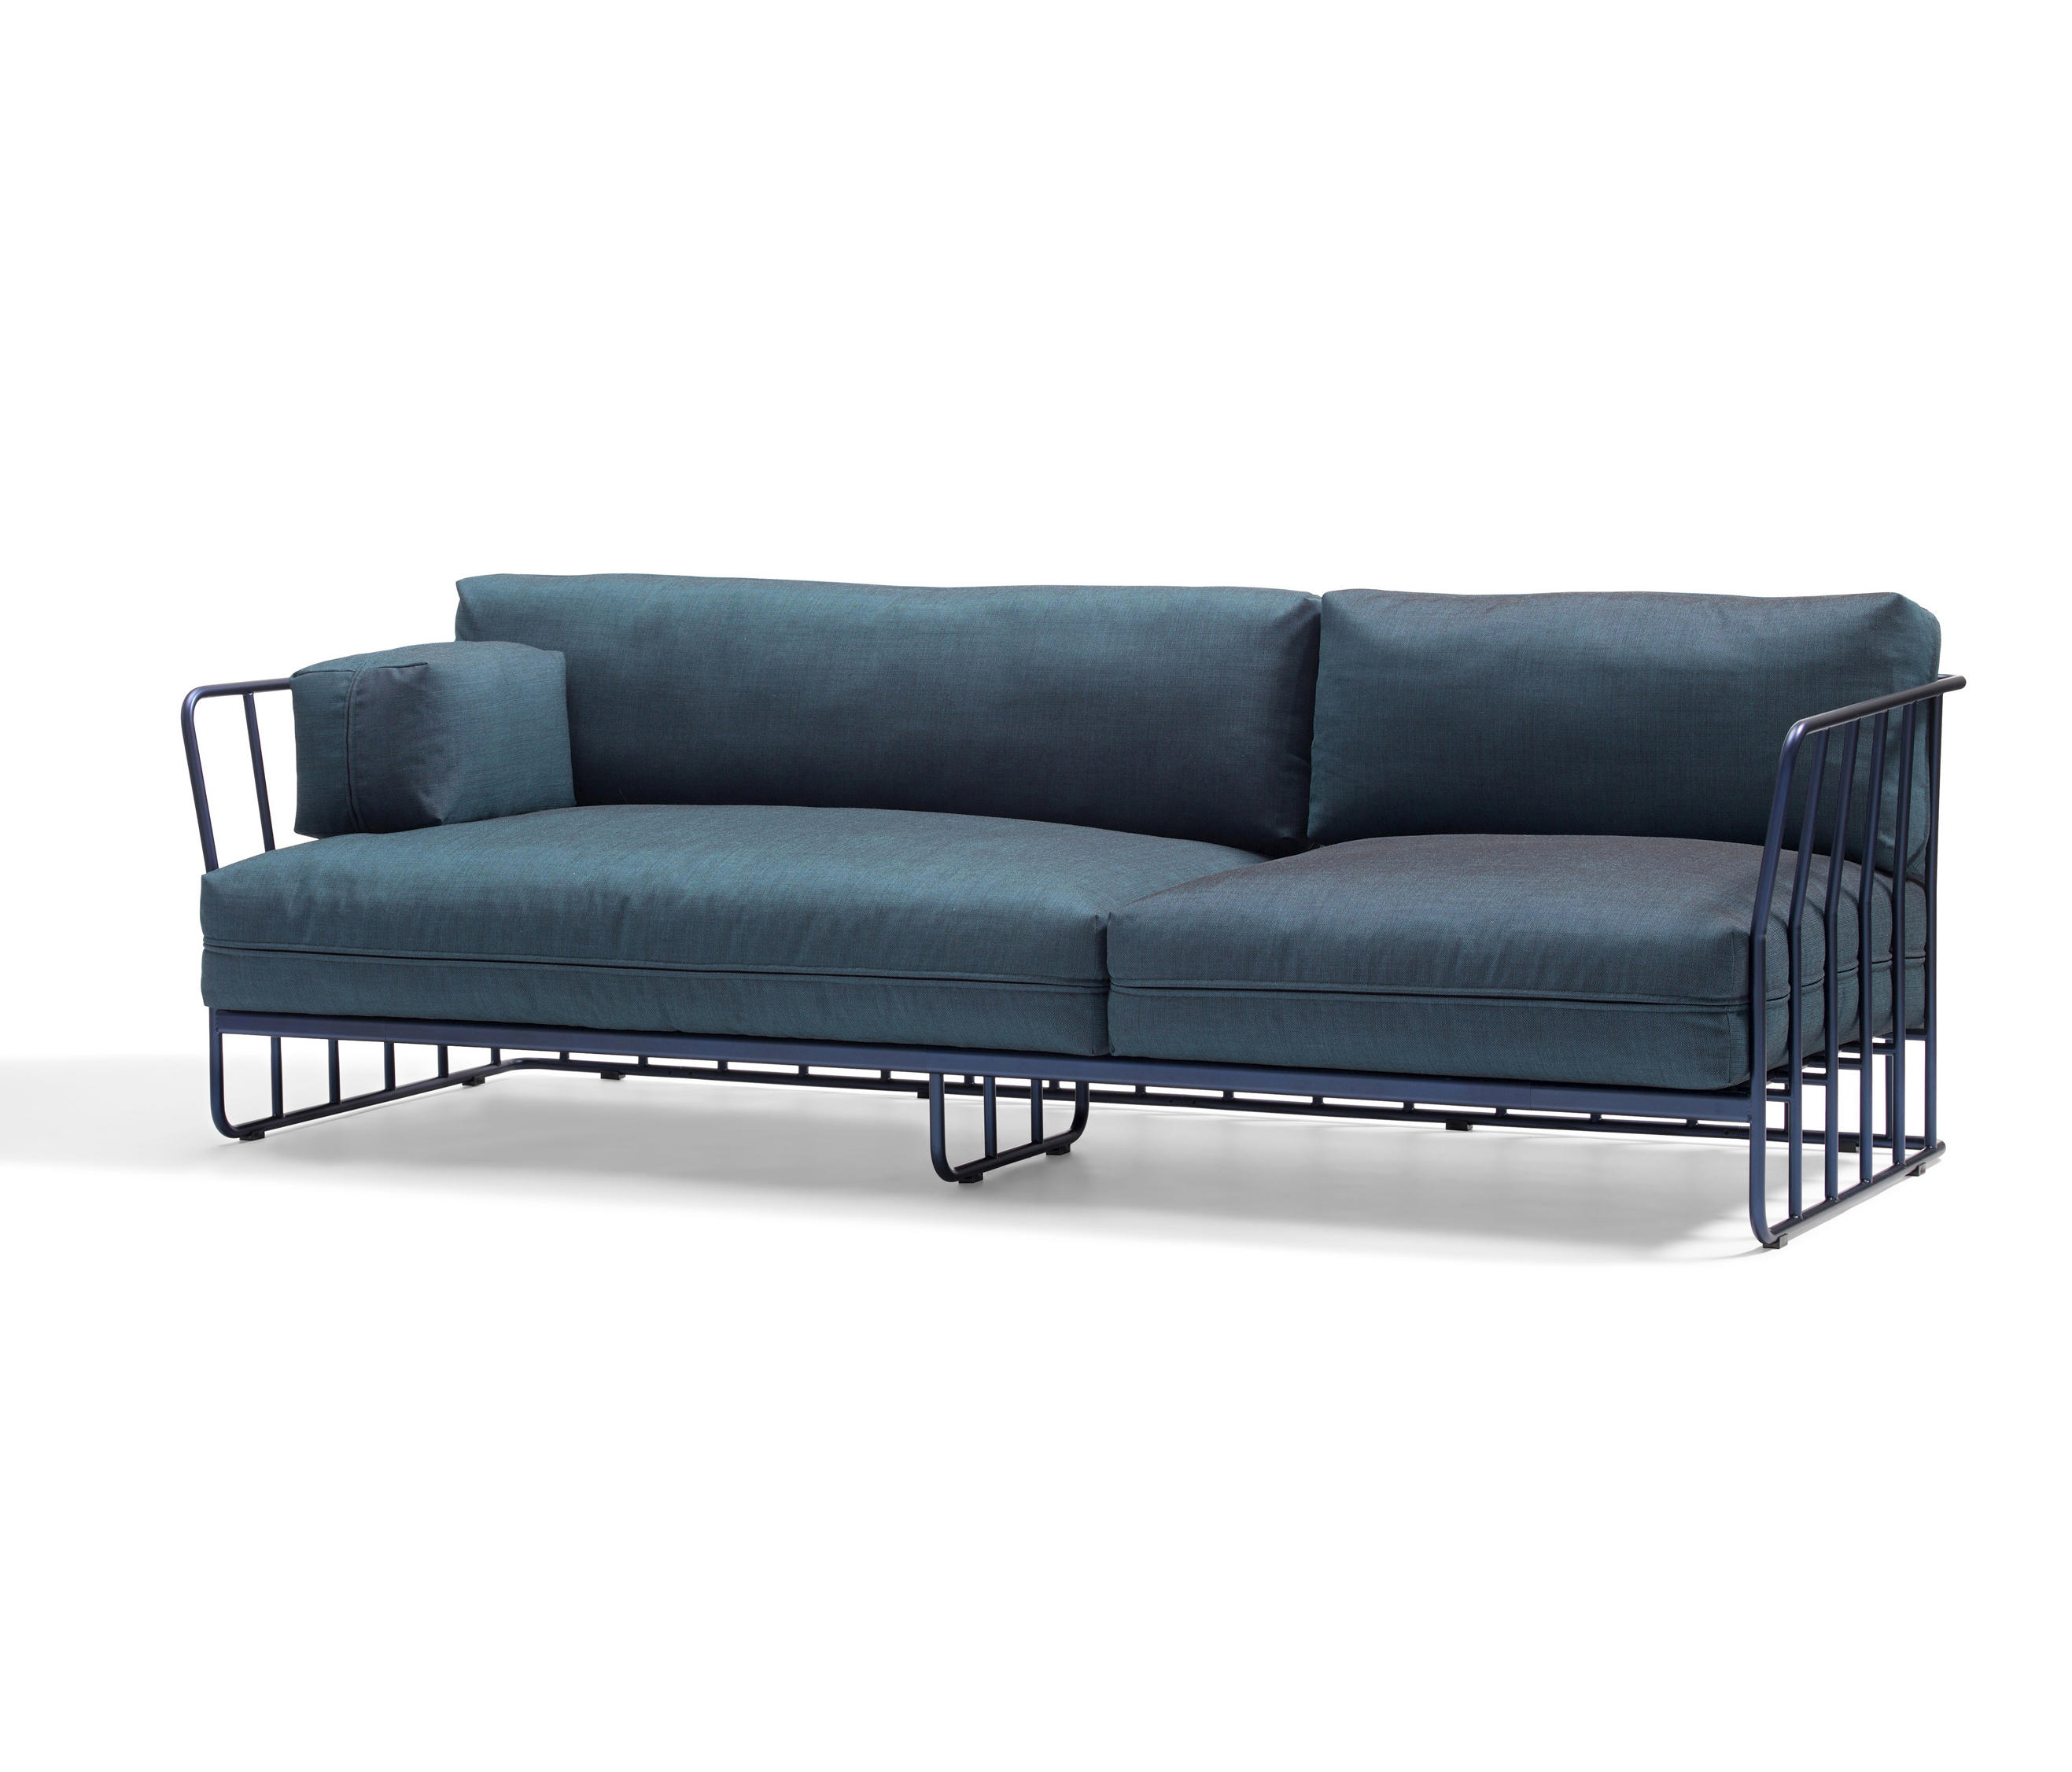 ... Code 27 Sofa By Blå Station | Lounge Sofas